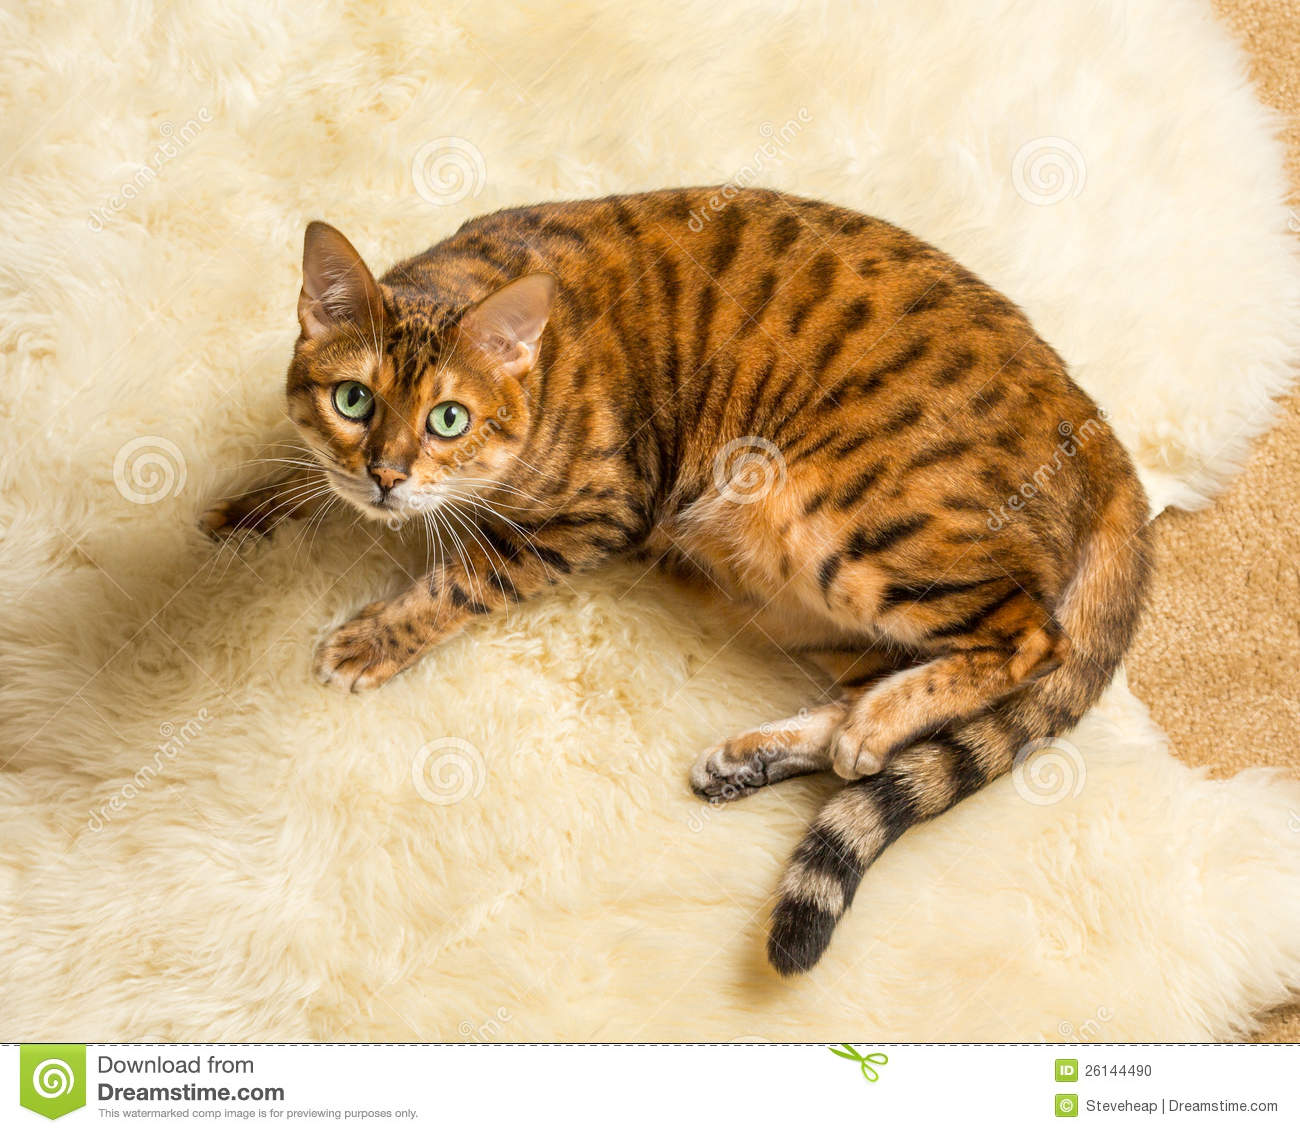 Orange Brown Bengal Cat On Wool Rug Stock Photo - Image ...Orange And White Bengal Cat